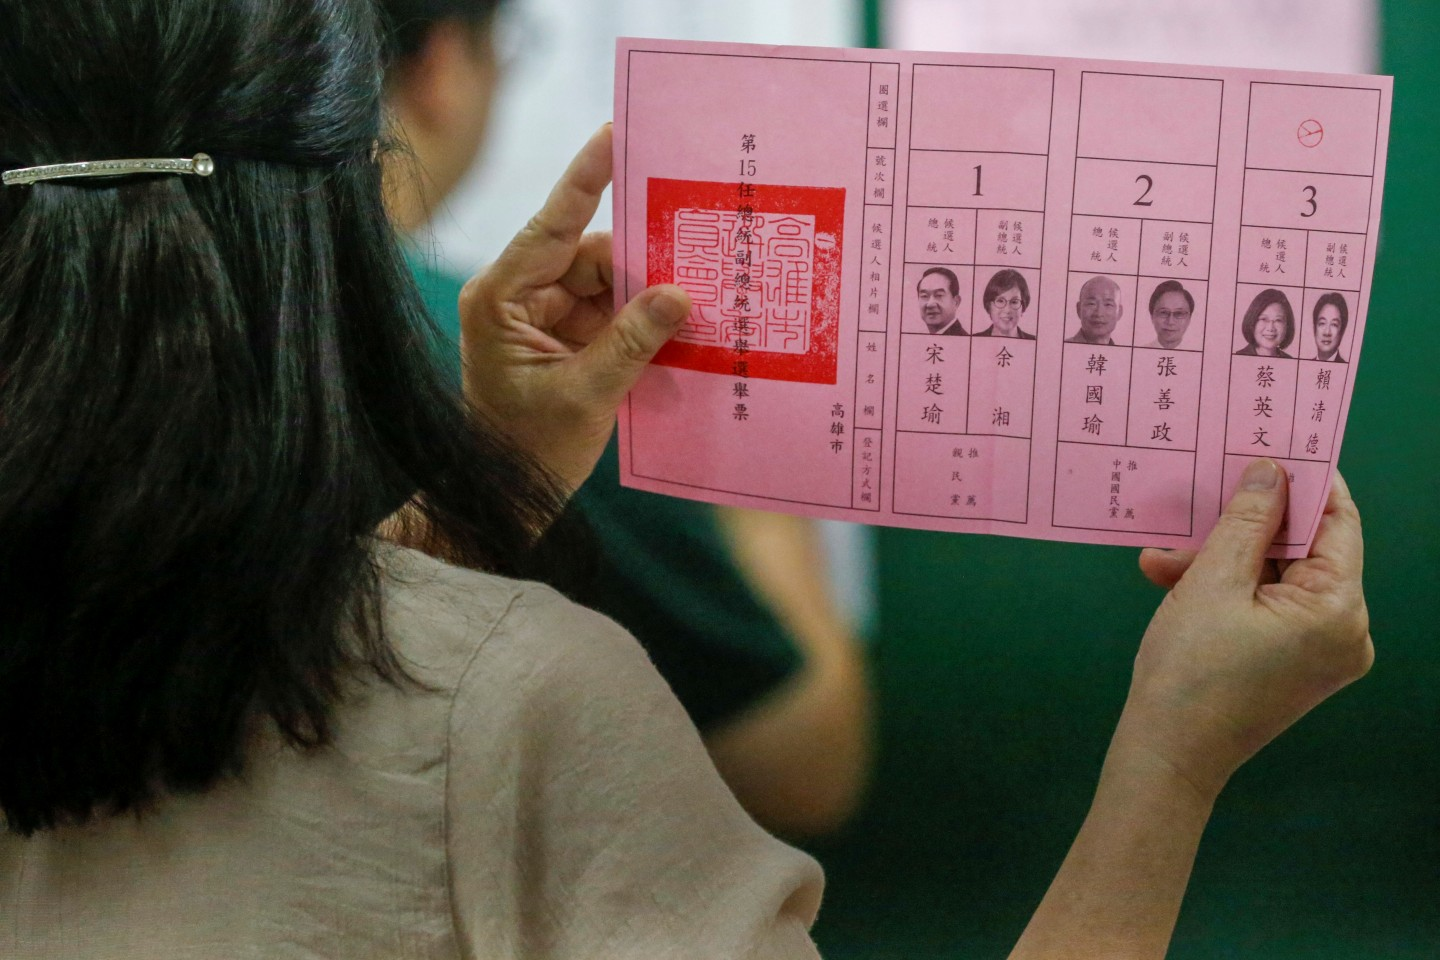 """Various state media have accused Tsai of resorting to """"dirty tactics"""" to get votes. In the picture, an election official shows a ballot with vote for Taiwan President Tsai Ing-wen as votes are counted at a polling station in Kaohsiung on 11 January 2020. (Ann Wang/Reuters)"""